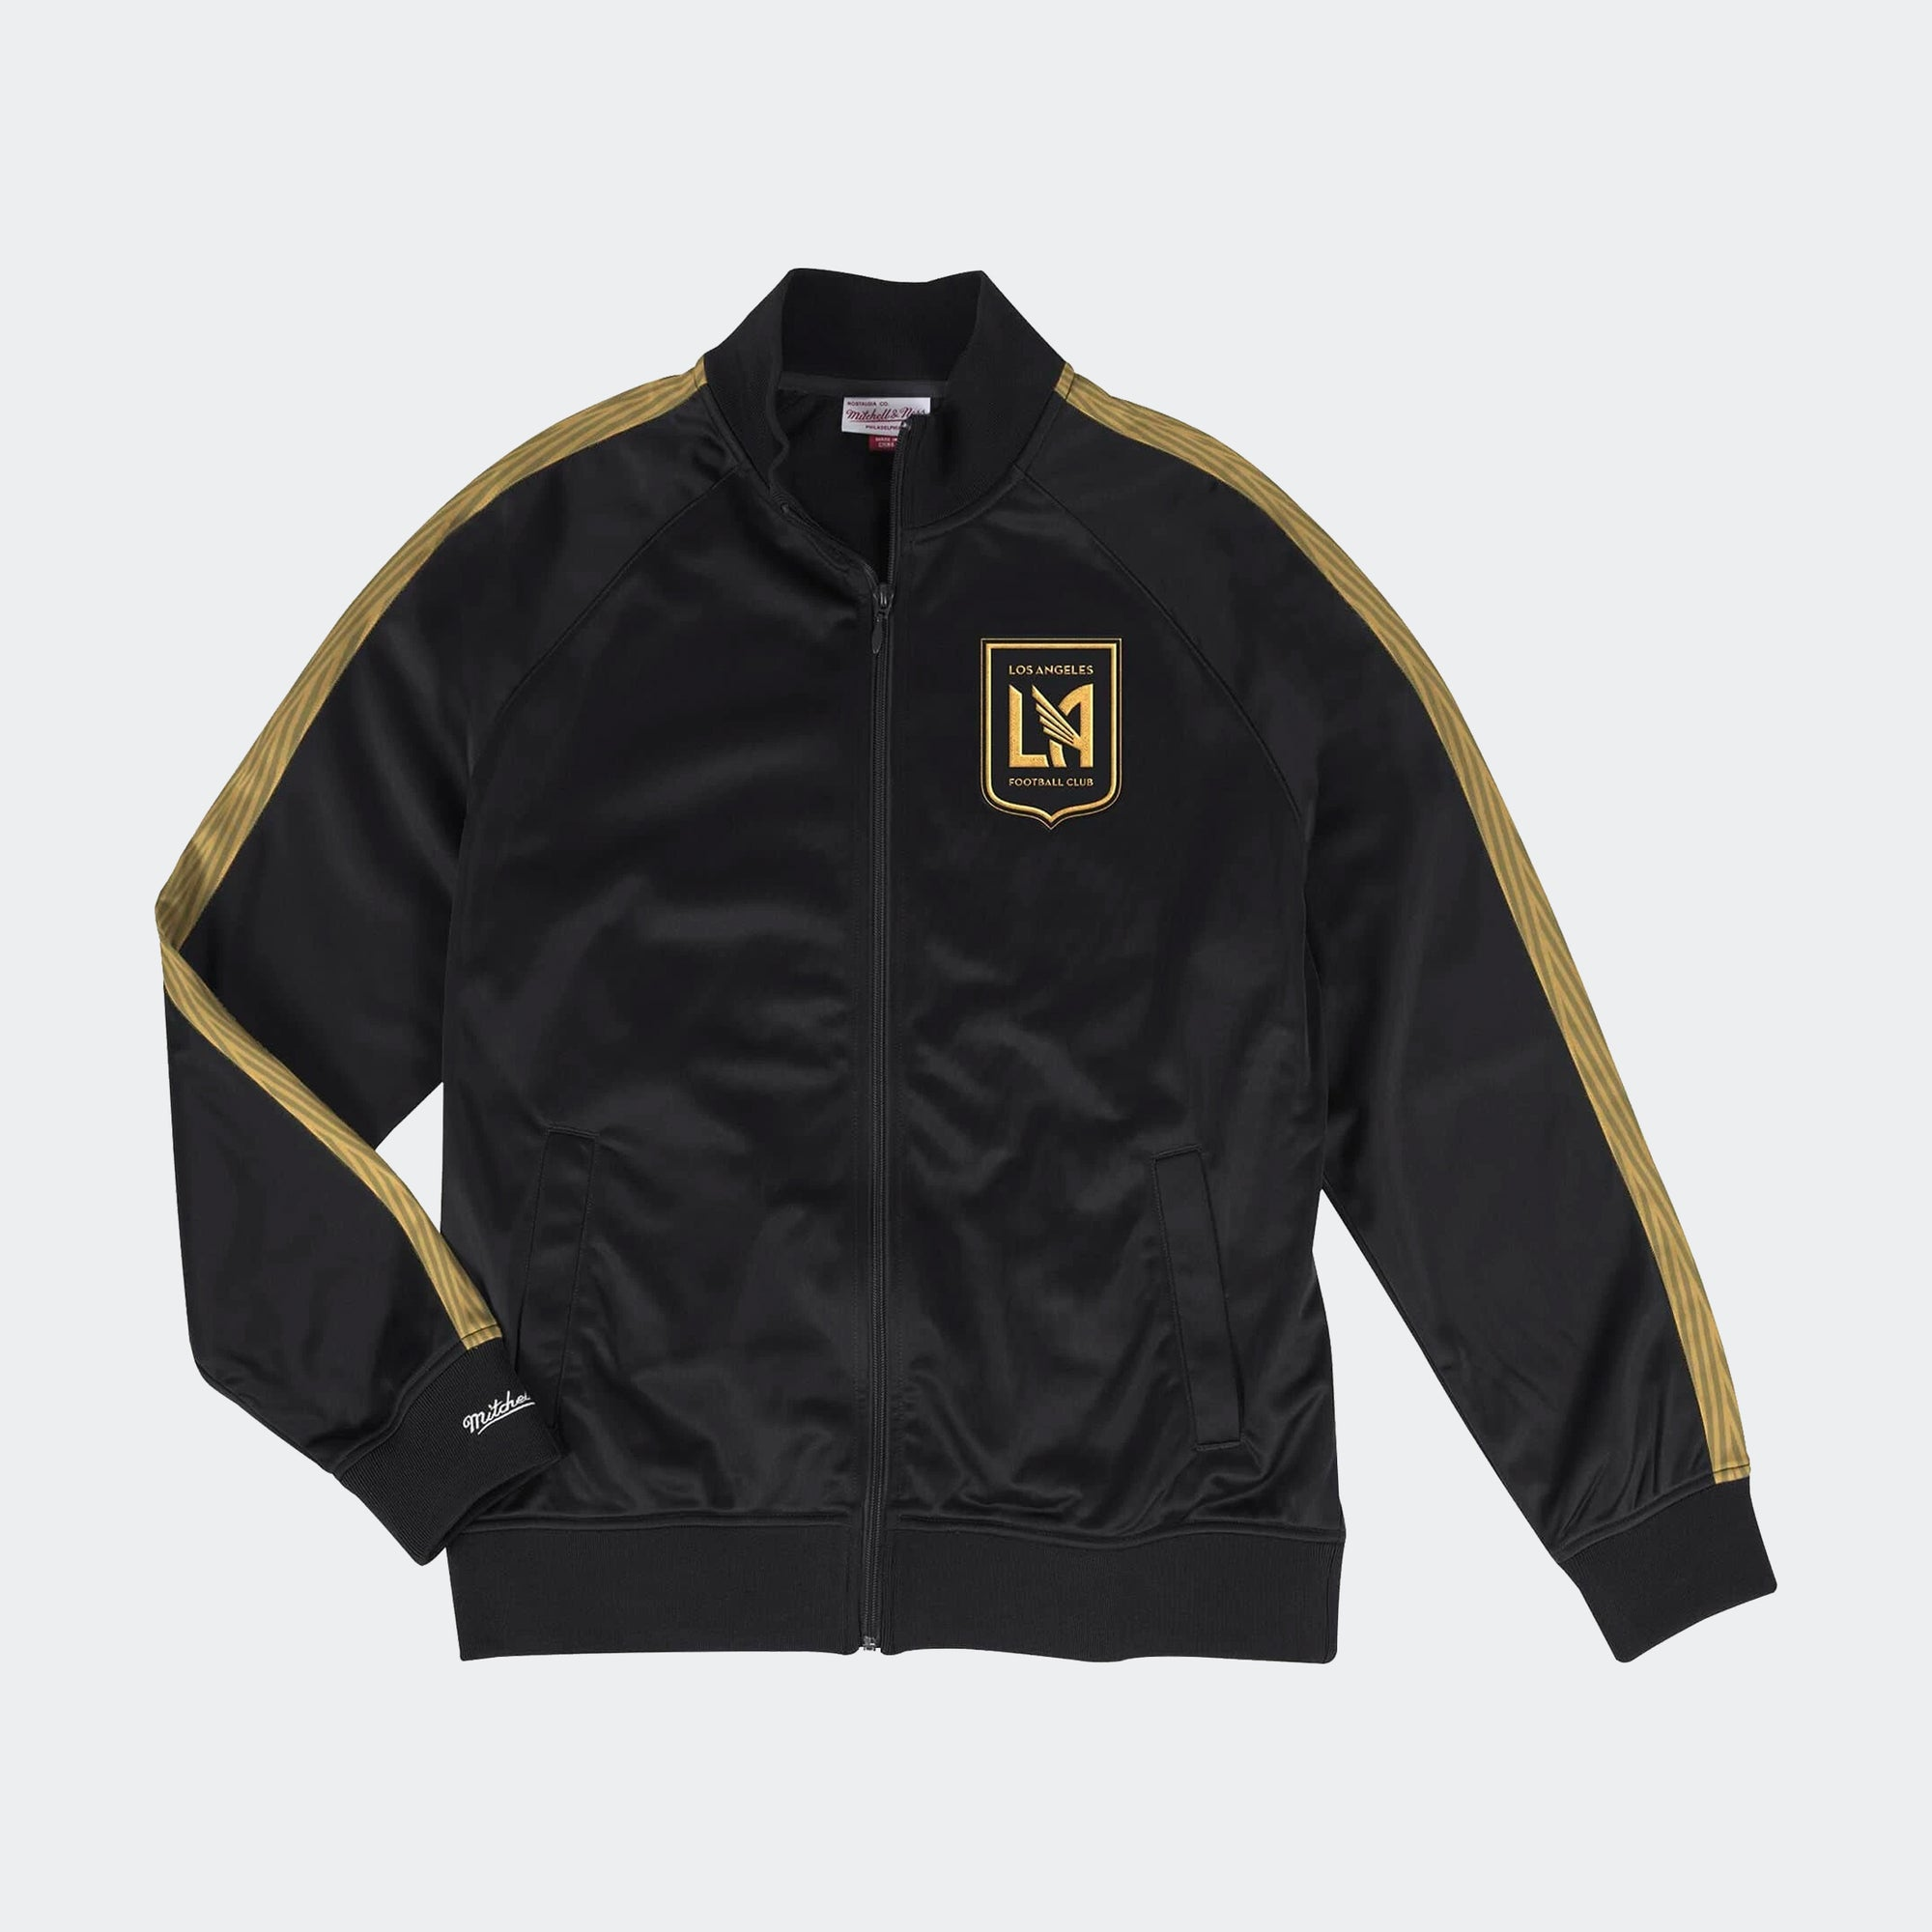 LAFC Track Jacket - Black/Gold